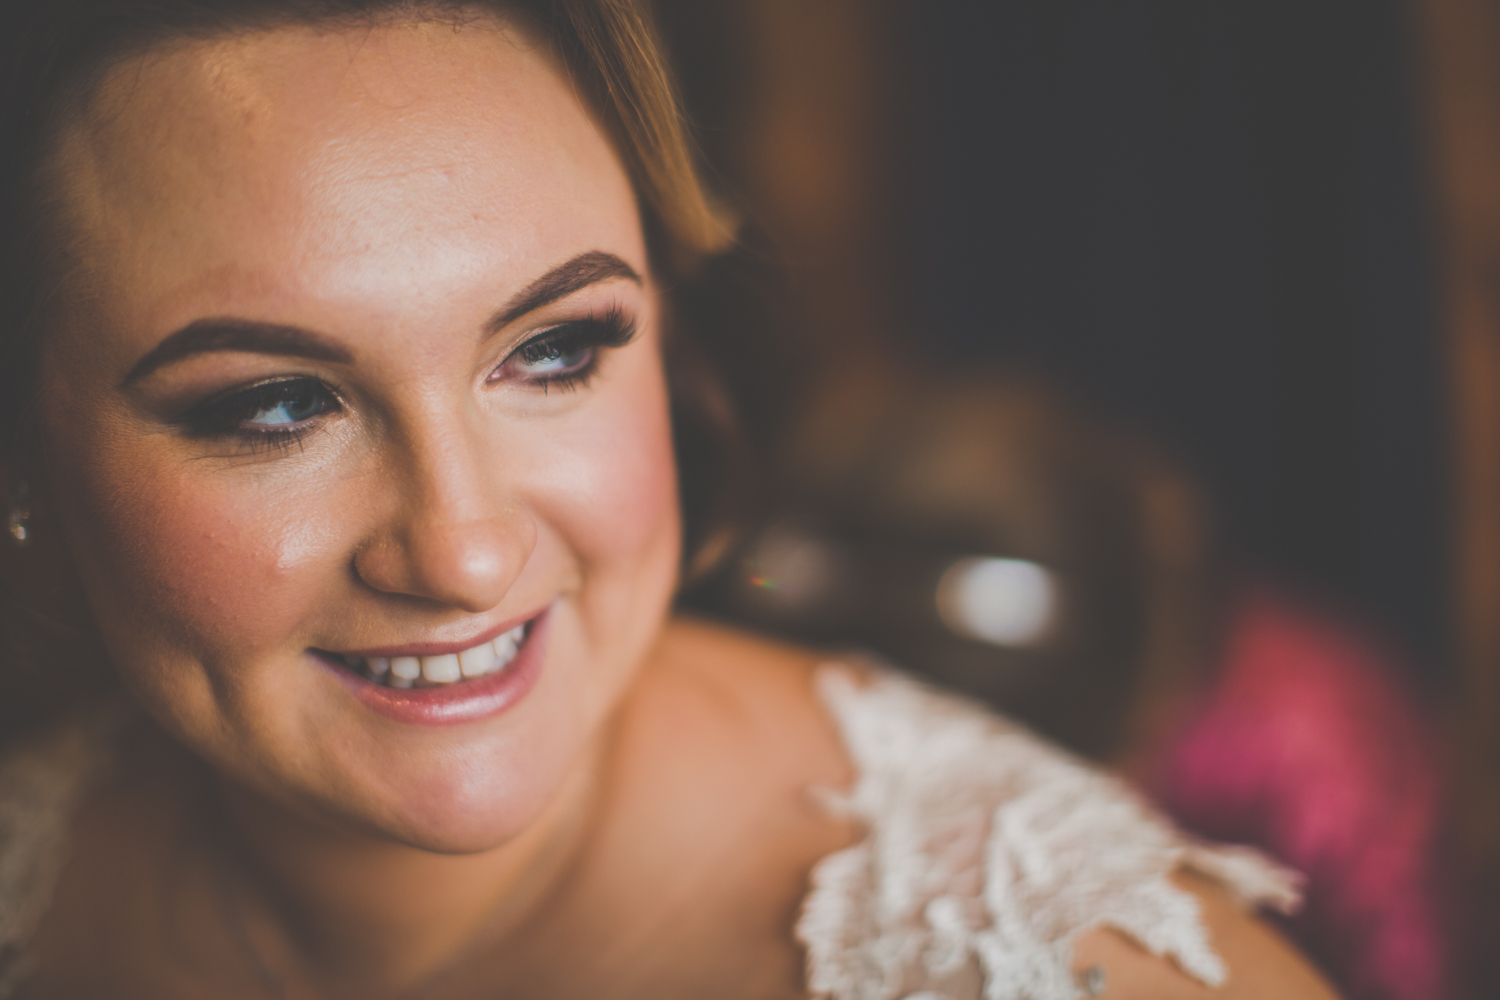 whitley hall sheffield quirky wedding photography-7.jpg